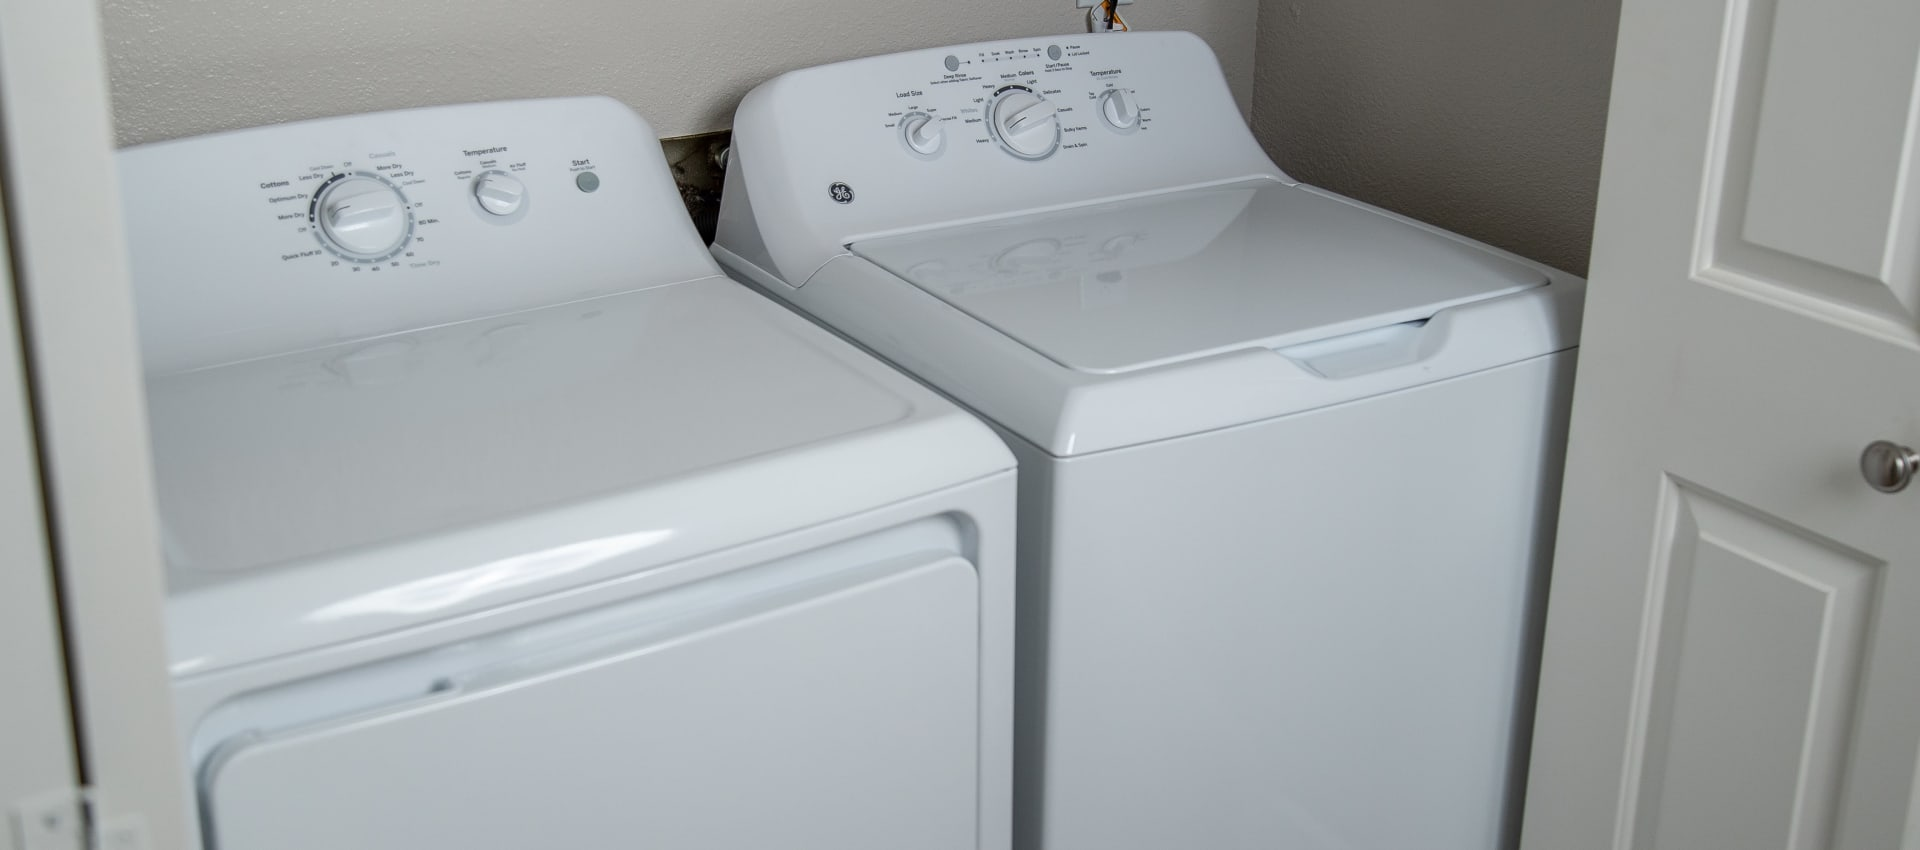 Washer and Dryer available at Shaliko in Rocklin, CA